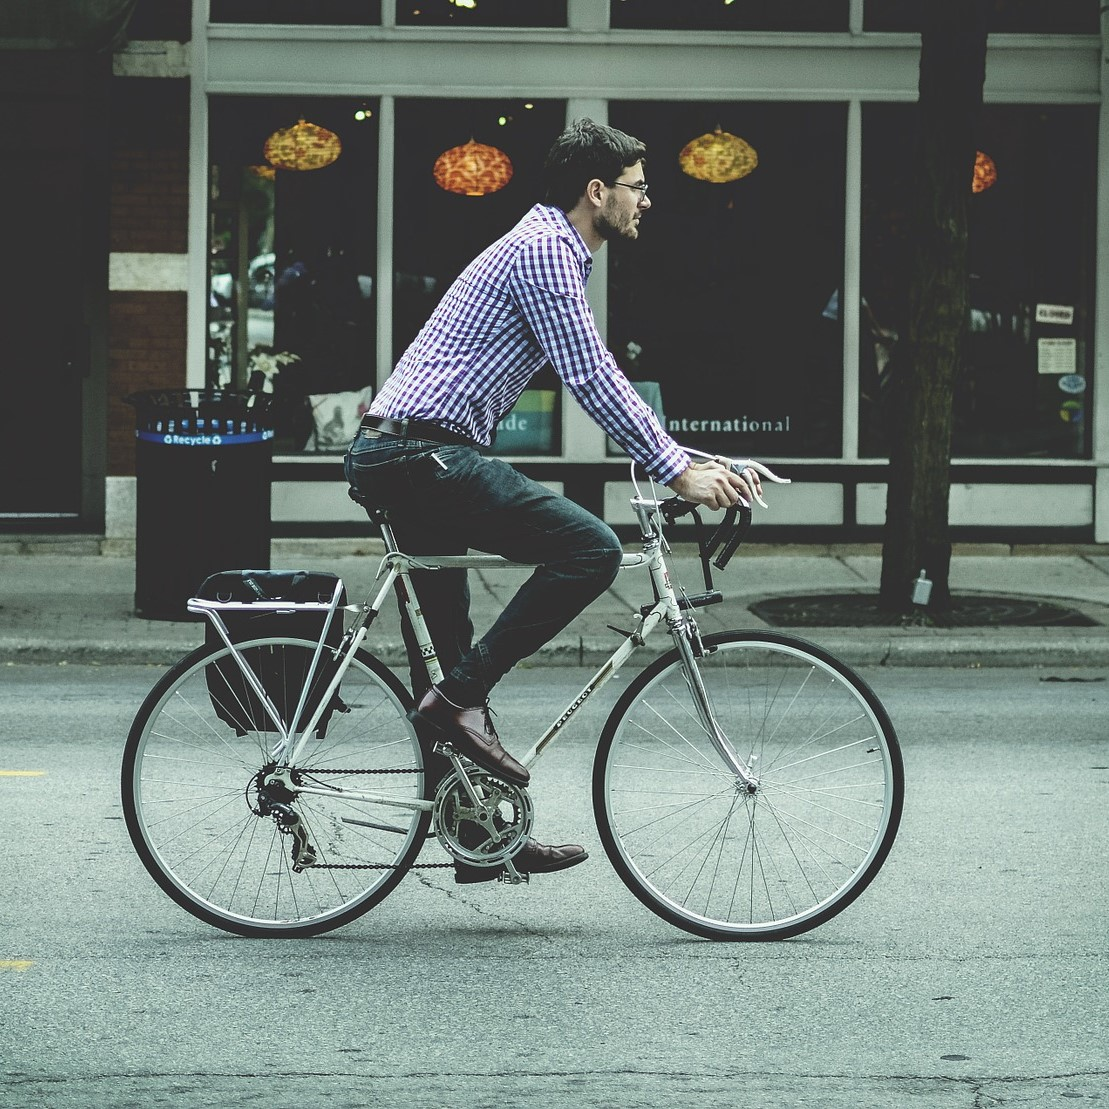 Majority of people would cycle to work if their employer offered better facilities